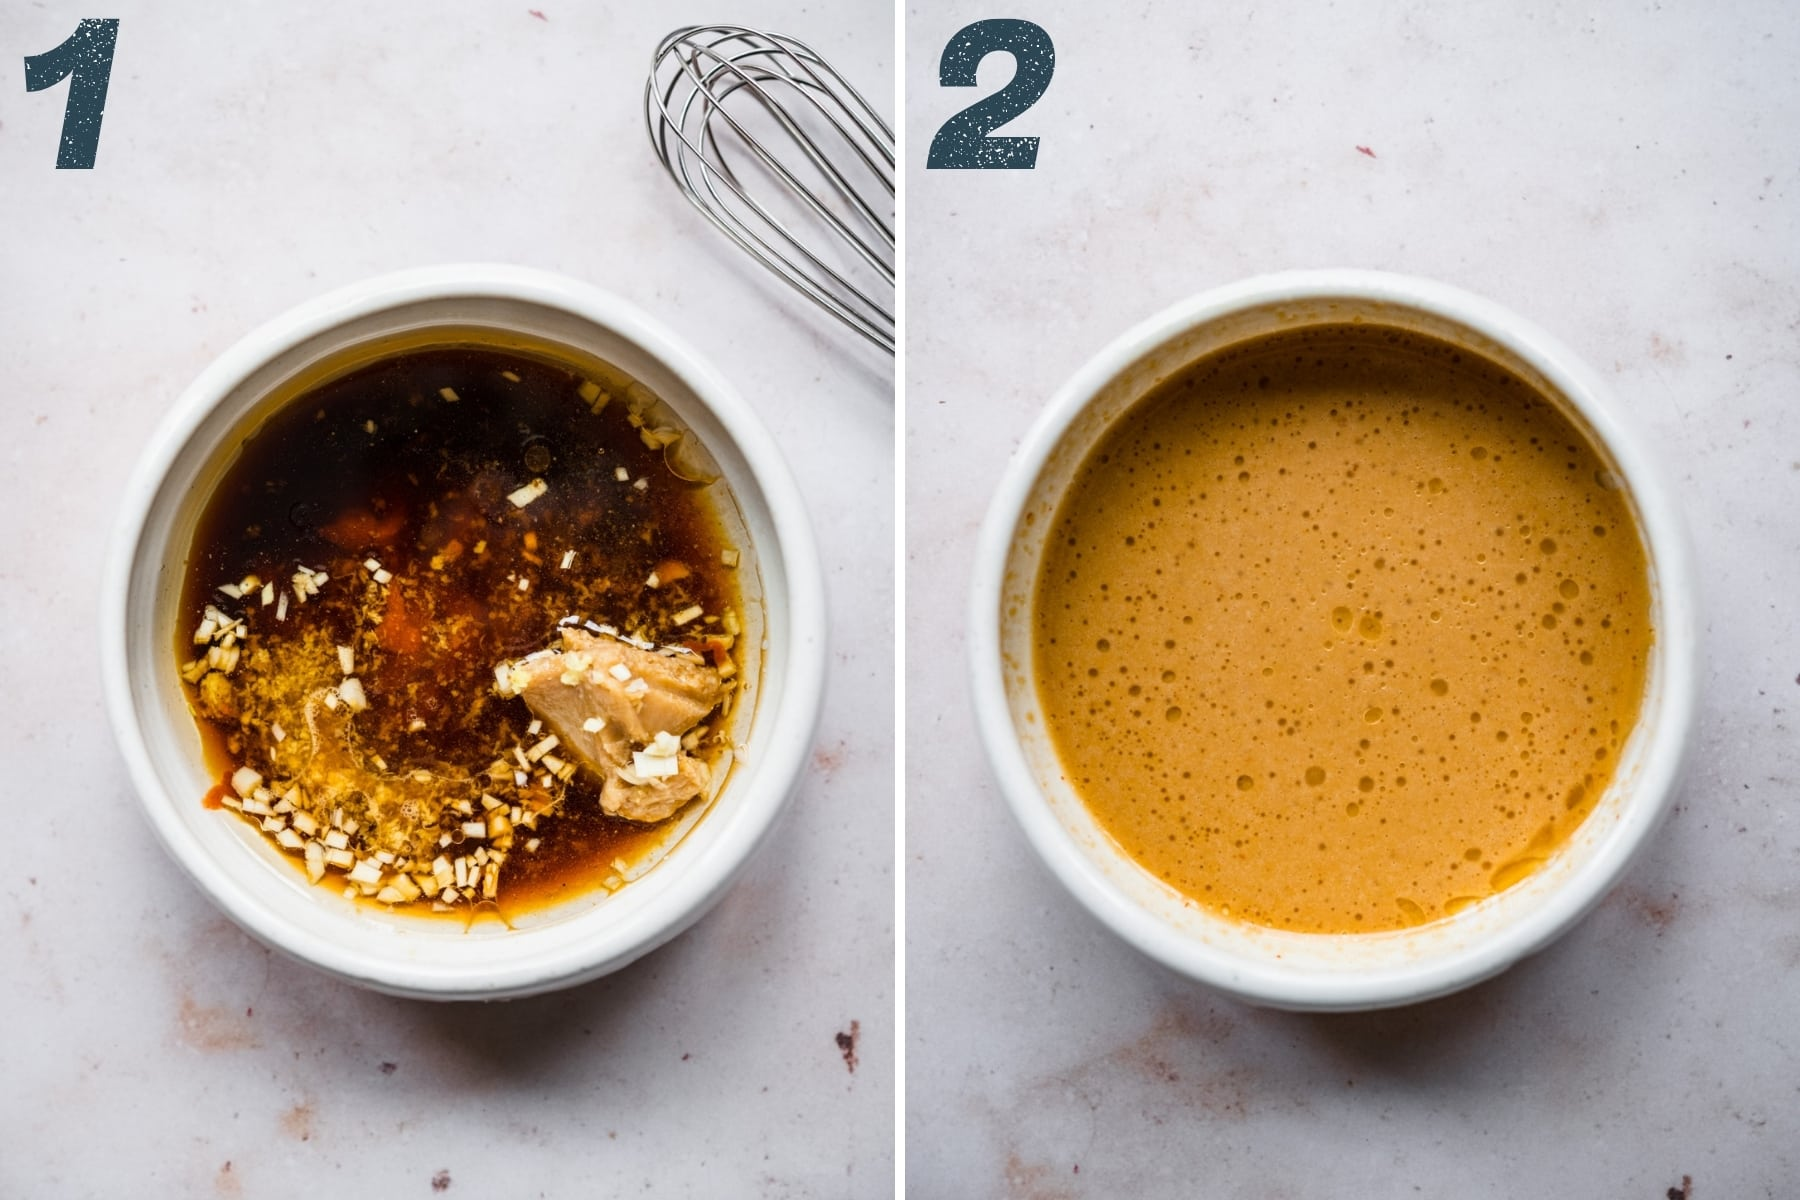 before and after whisking together ingredients for miso sesame dressing.